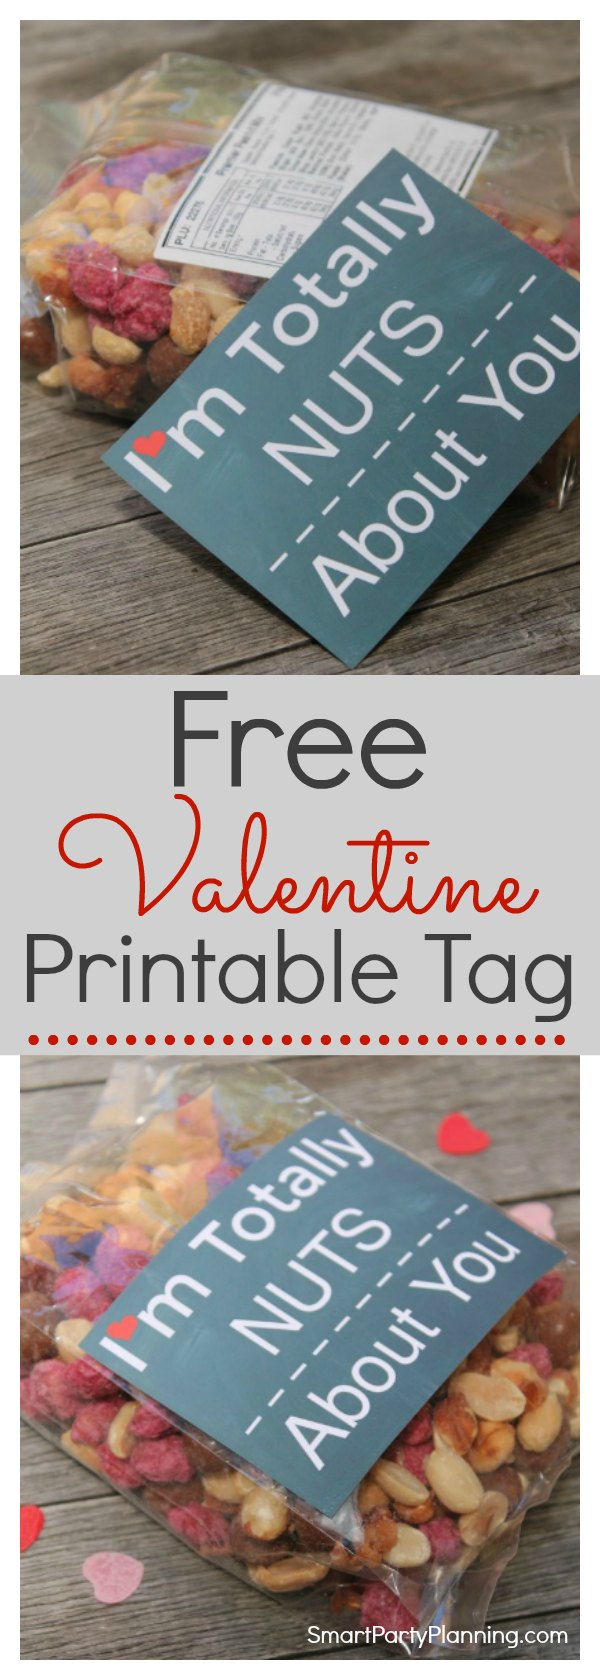 A free Valentine printable that makes the perfect gift.  The Nuts About You printable tag is great for someone who has it all. Available as an instant download, preparing your Valentine's gift this year couldn't be easier.